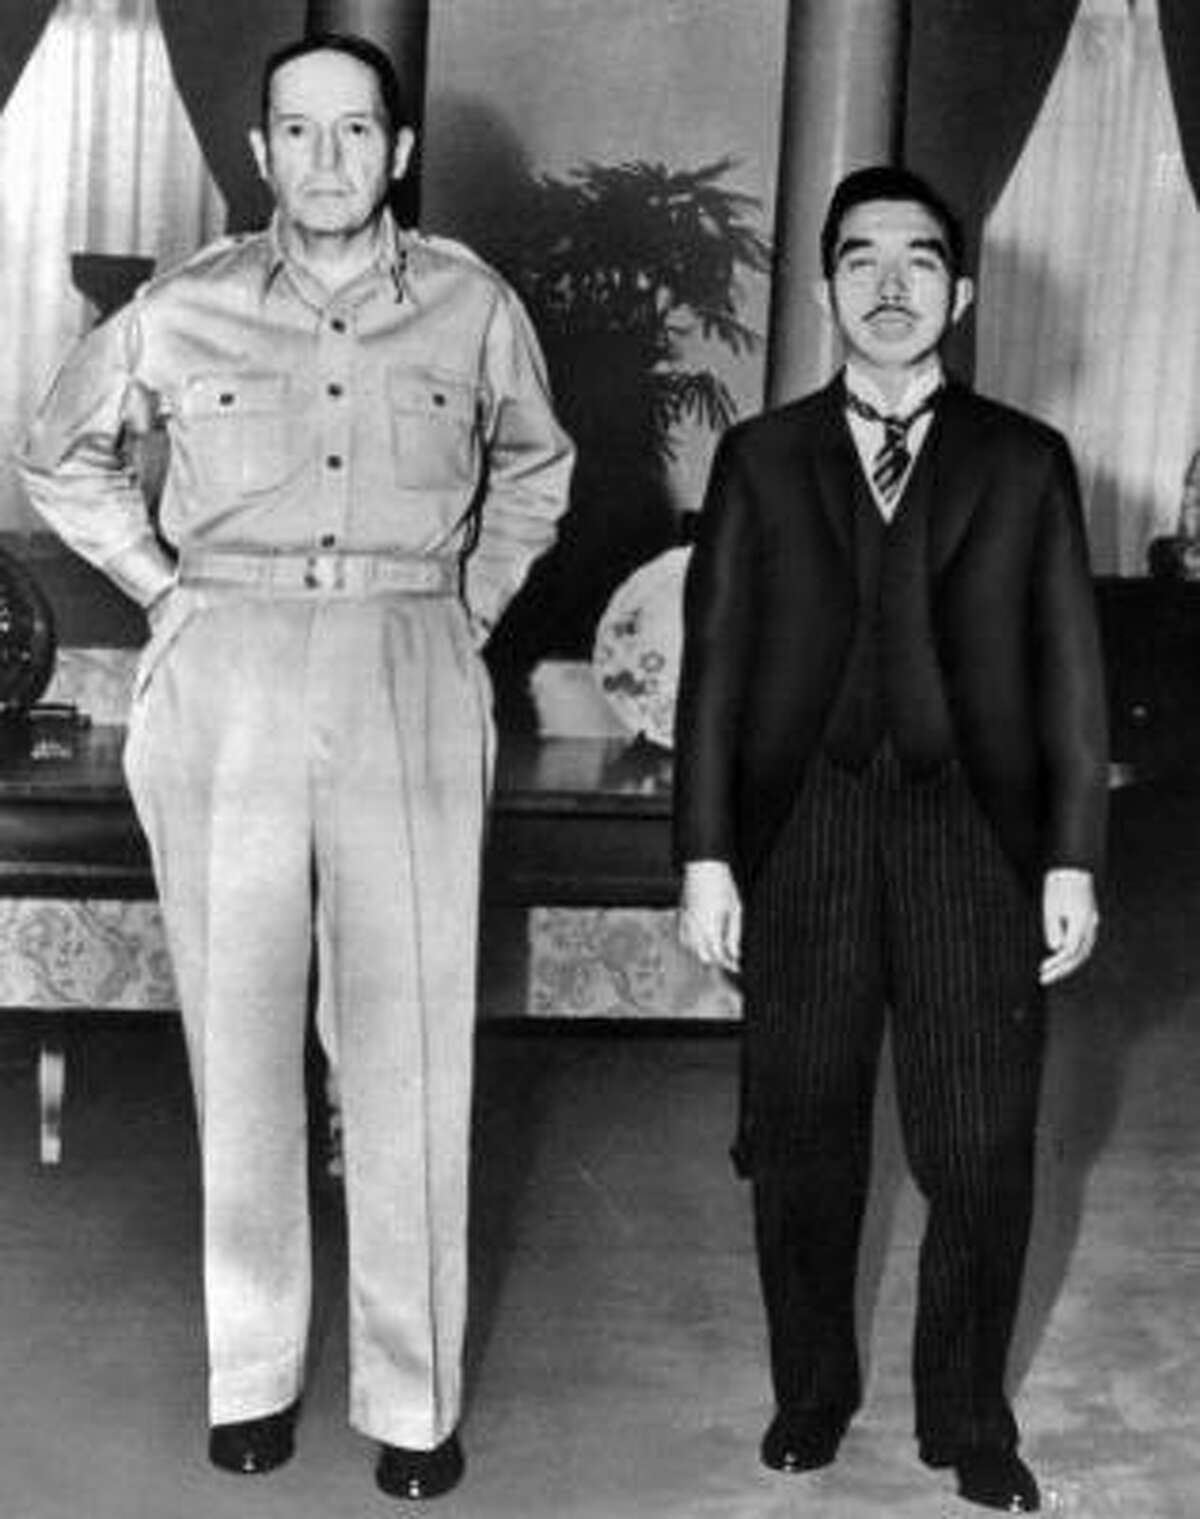 Hirohito Hirohito was crowned emperor of Japan in 1926. Here, he poses with Gen. Douglas MacArthur, left, during a visit to the U.S. Embassy in Tokyo in 1945.